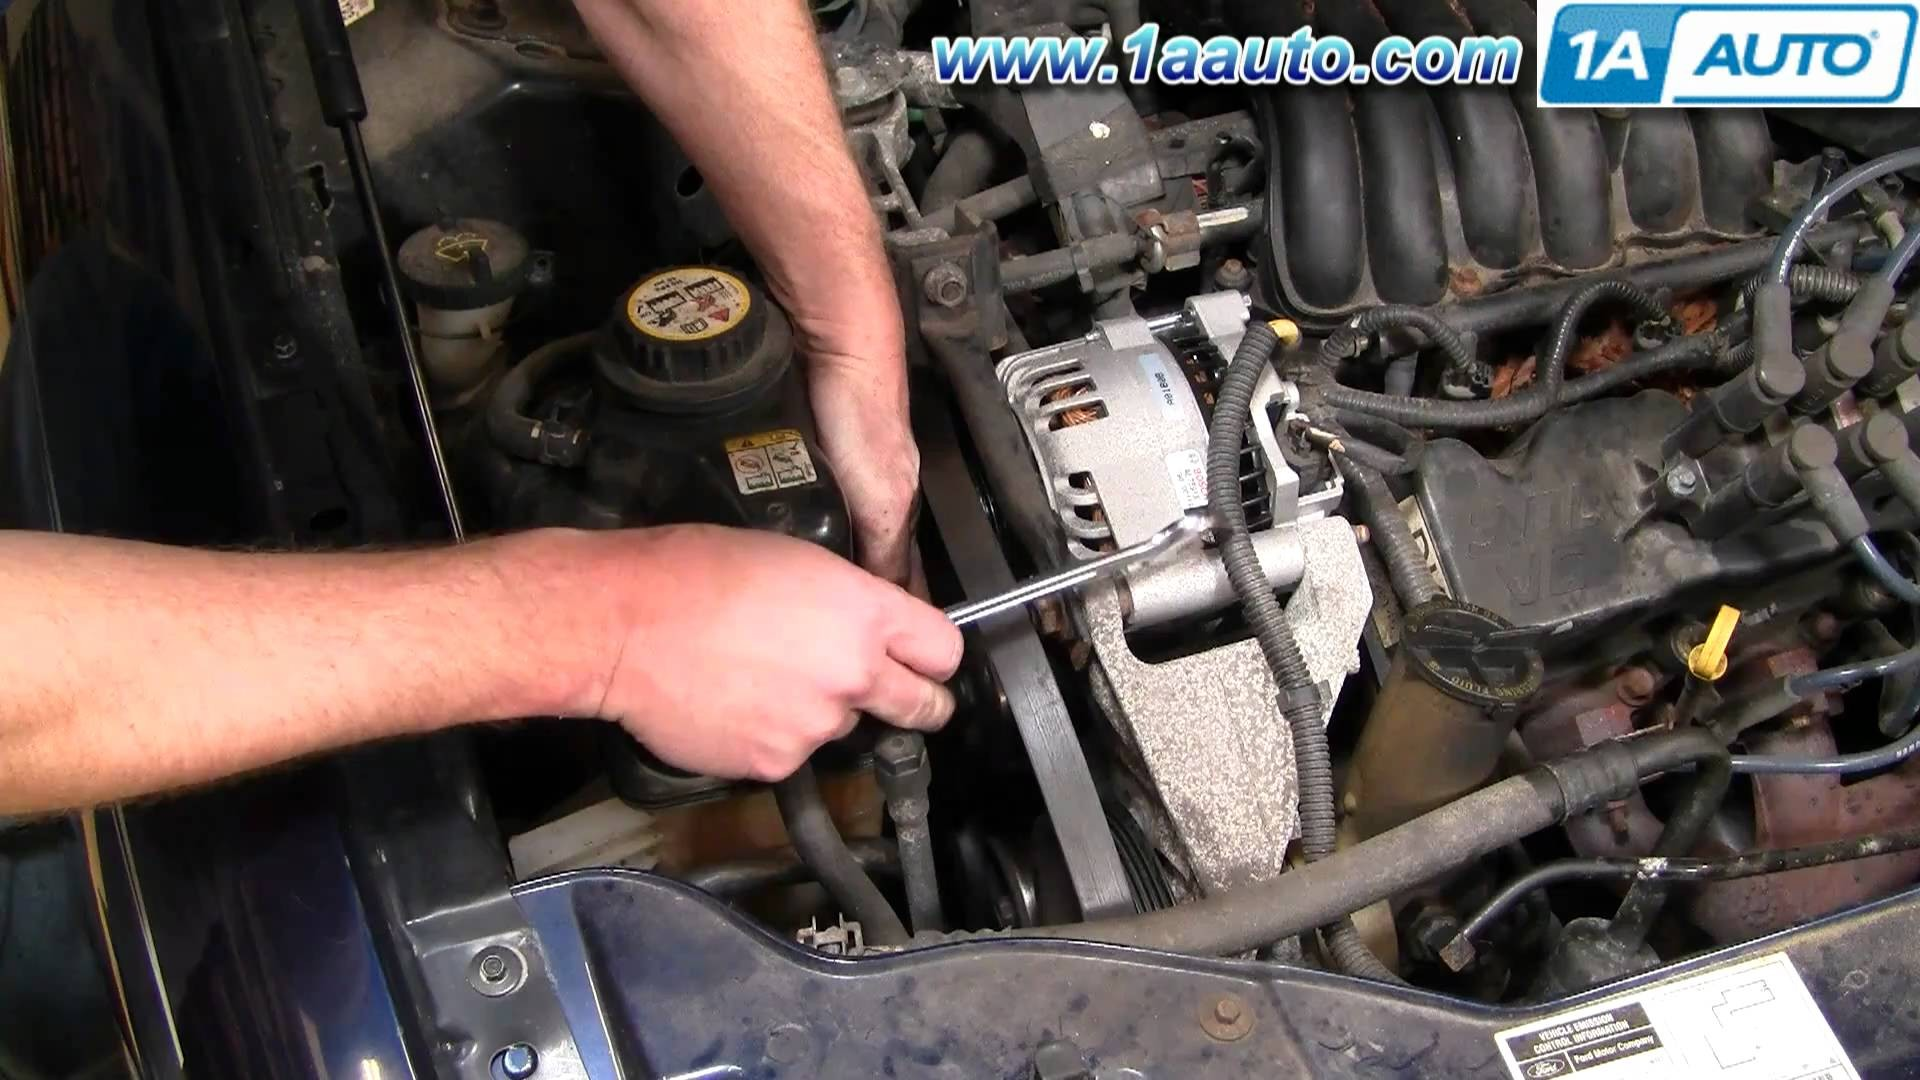 1998 ford Taurus Engine Diagram How to Install Replace Serpentine Belt Idler Pulley ford Taurus 3 0l Of 1998 ford Taurus Engine Diagram